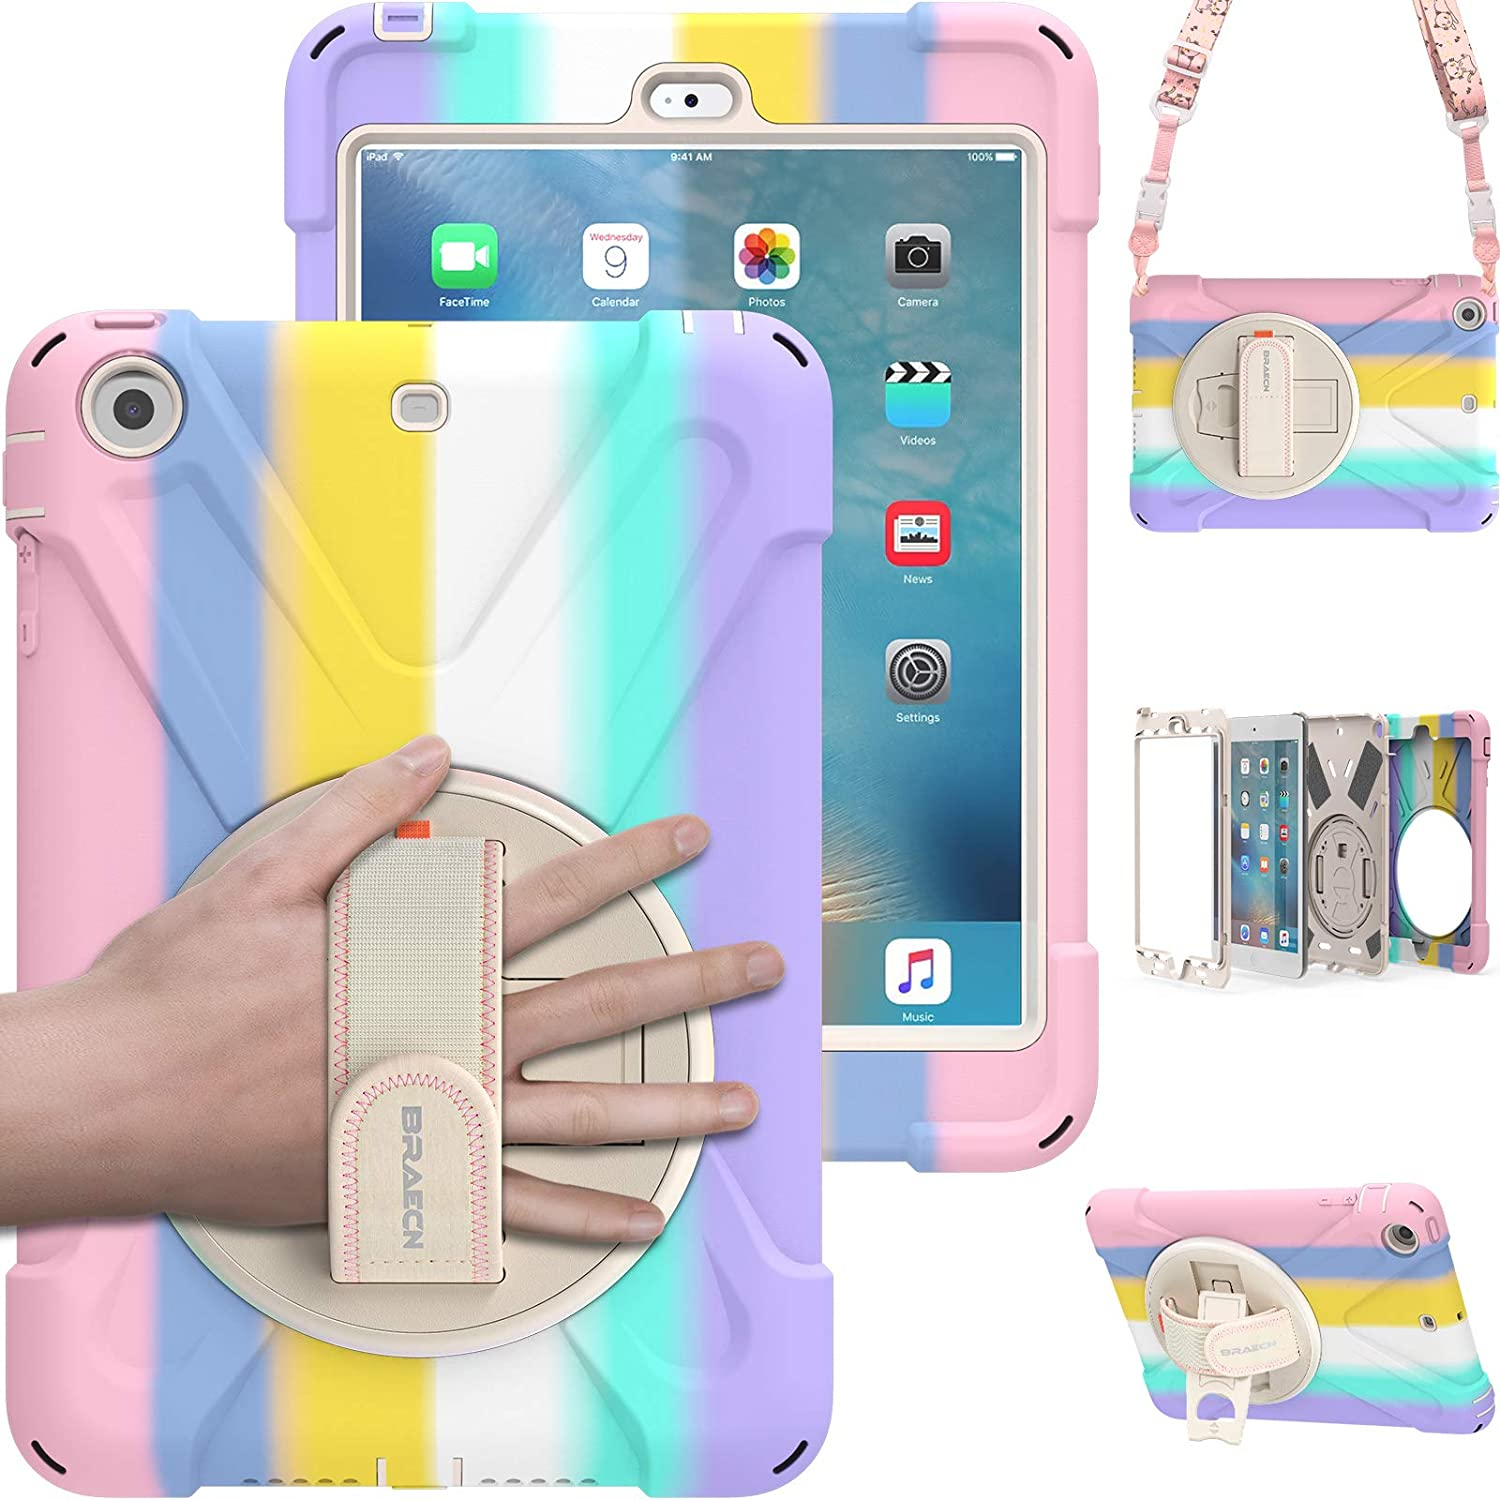 BRAECN iPad Mini 3 2 1 Case for Kids,Rugged Hard Heavy Duty Shockproof Boys Girls Case with Hand Strap, Carrying Shoulder Strap, Kickstand for Apple iPad Mini 1st 2nd 3rd Generation - Colorful Pink